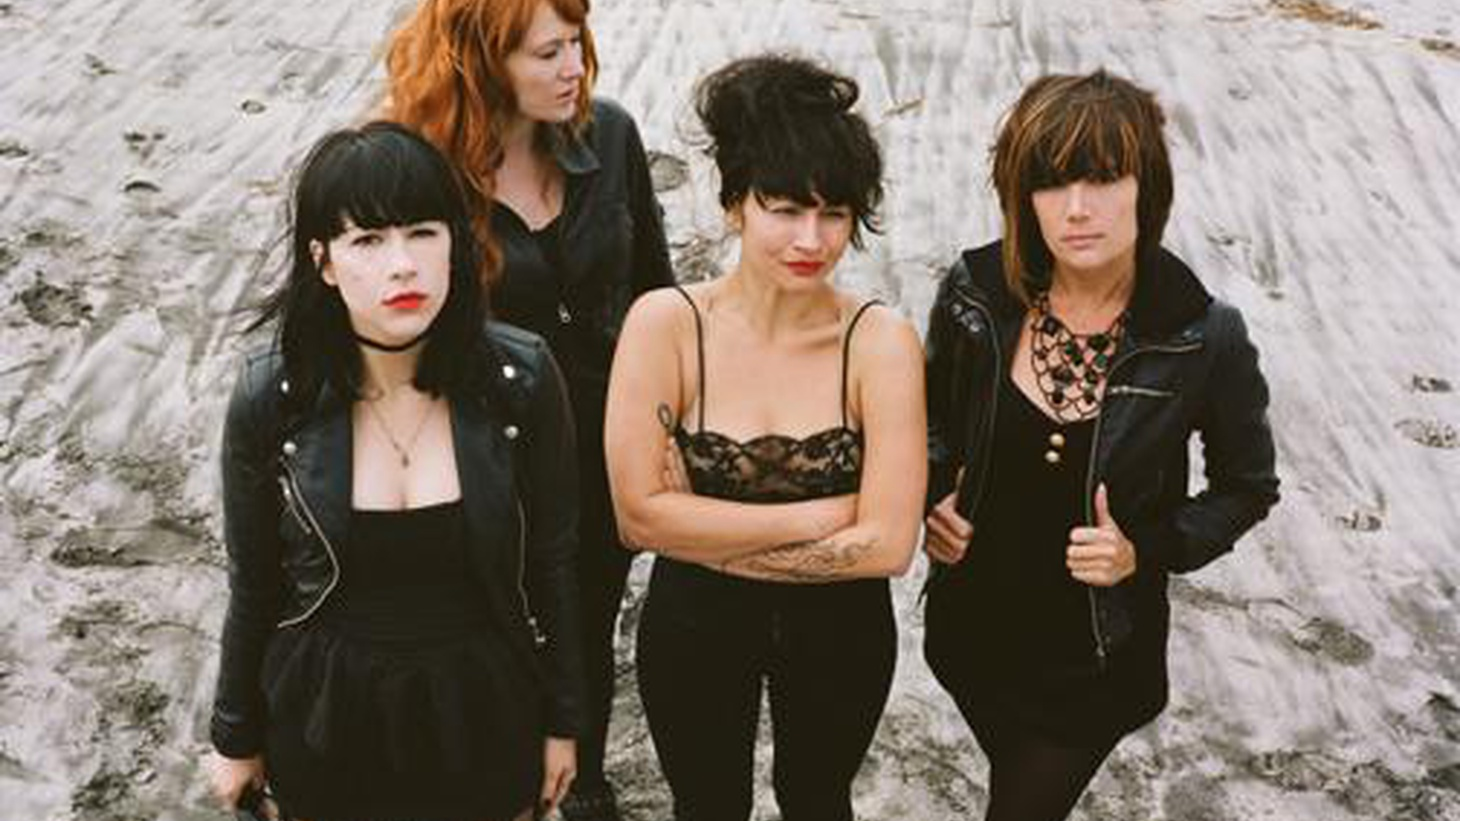 """L.A.'s Dum Dum Girls pay tribute to 60's girl groups and early punk rockers on their full length debut, I Will Be. Produced by Richard Gottehrer, who lent a helping hand to a dizzying amount of artists including the Go-Go's and Blondie and most recently The Ravonettes. Today's Top Tune is """"Blank Girl."""""""